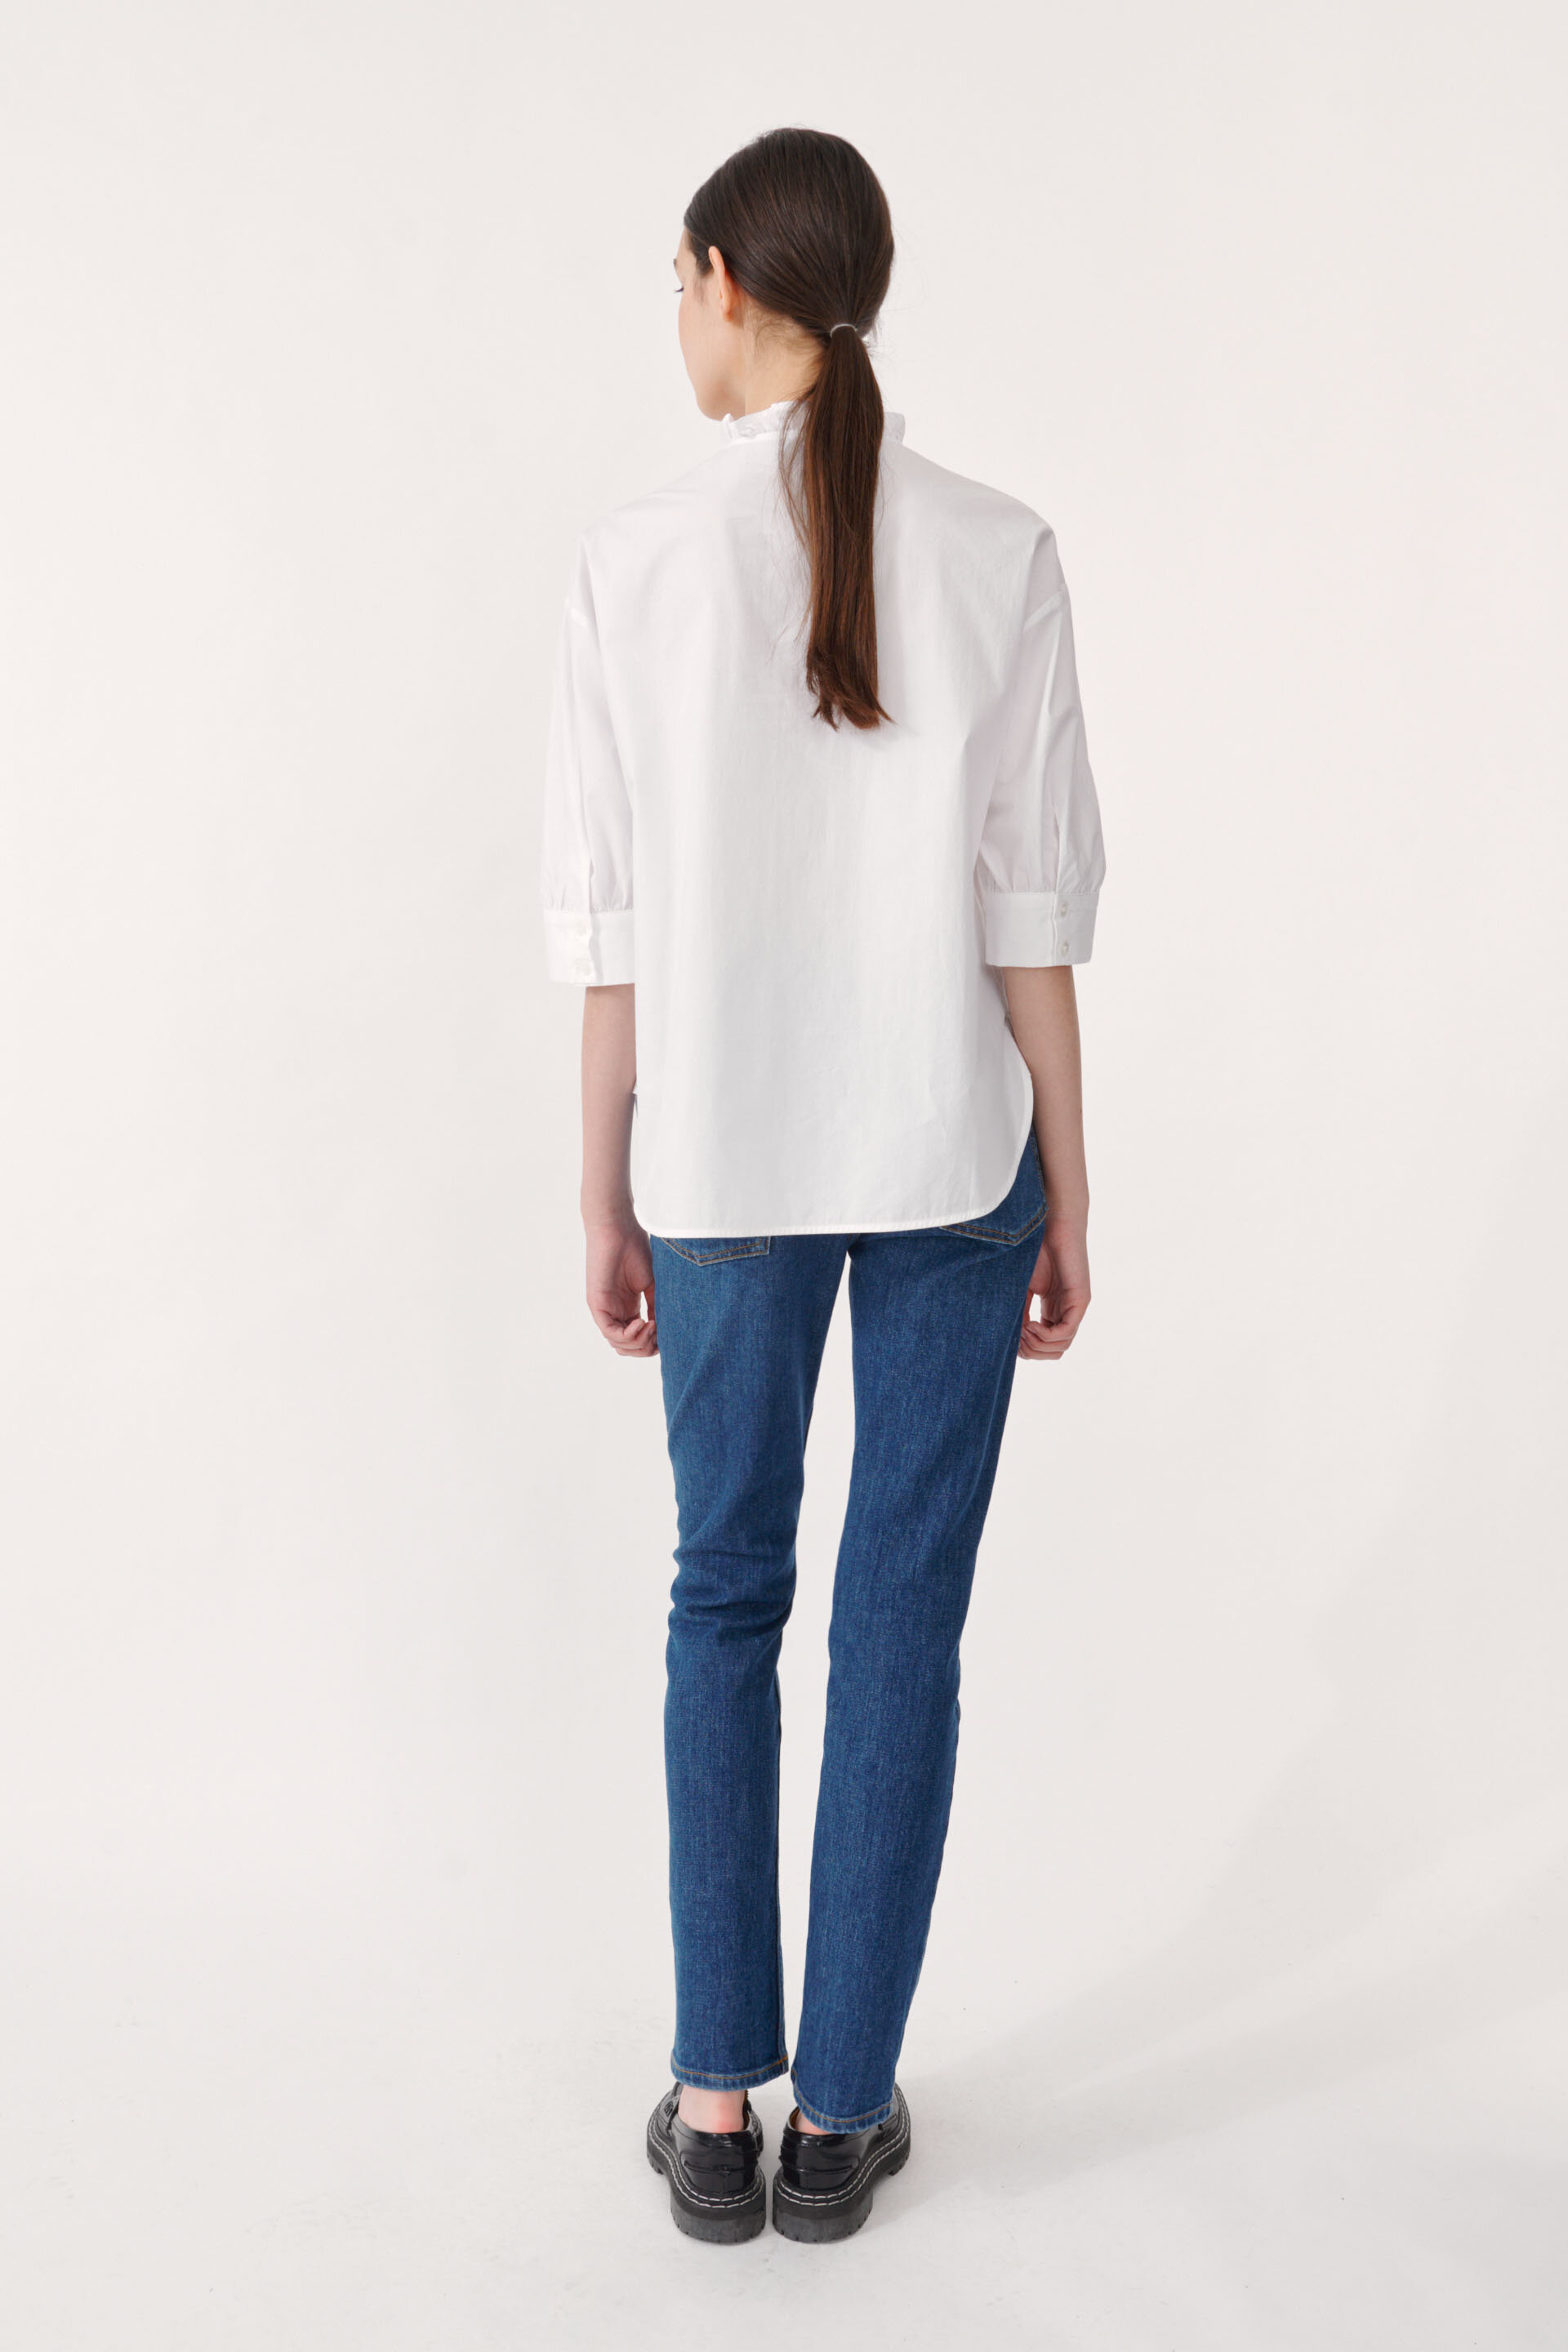 Merelle Blouse Bright White This crisp, light blouse with buttons in the front and a high, ruffled neck - detail image